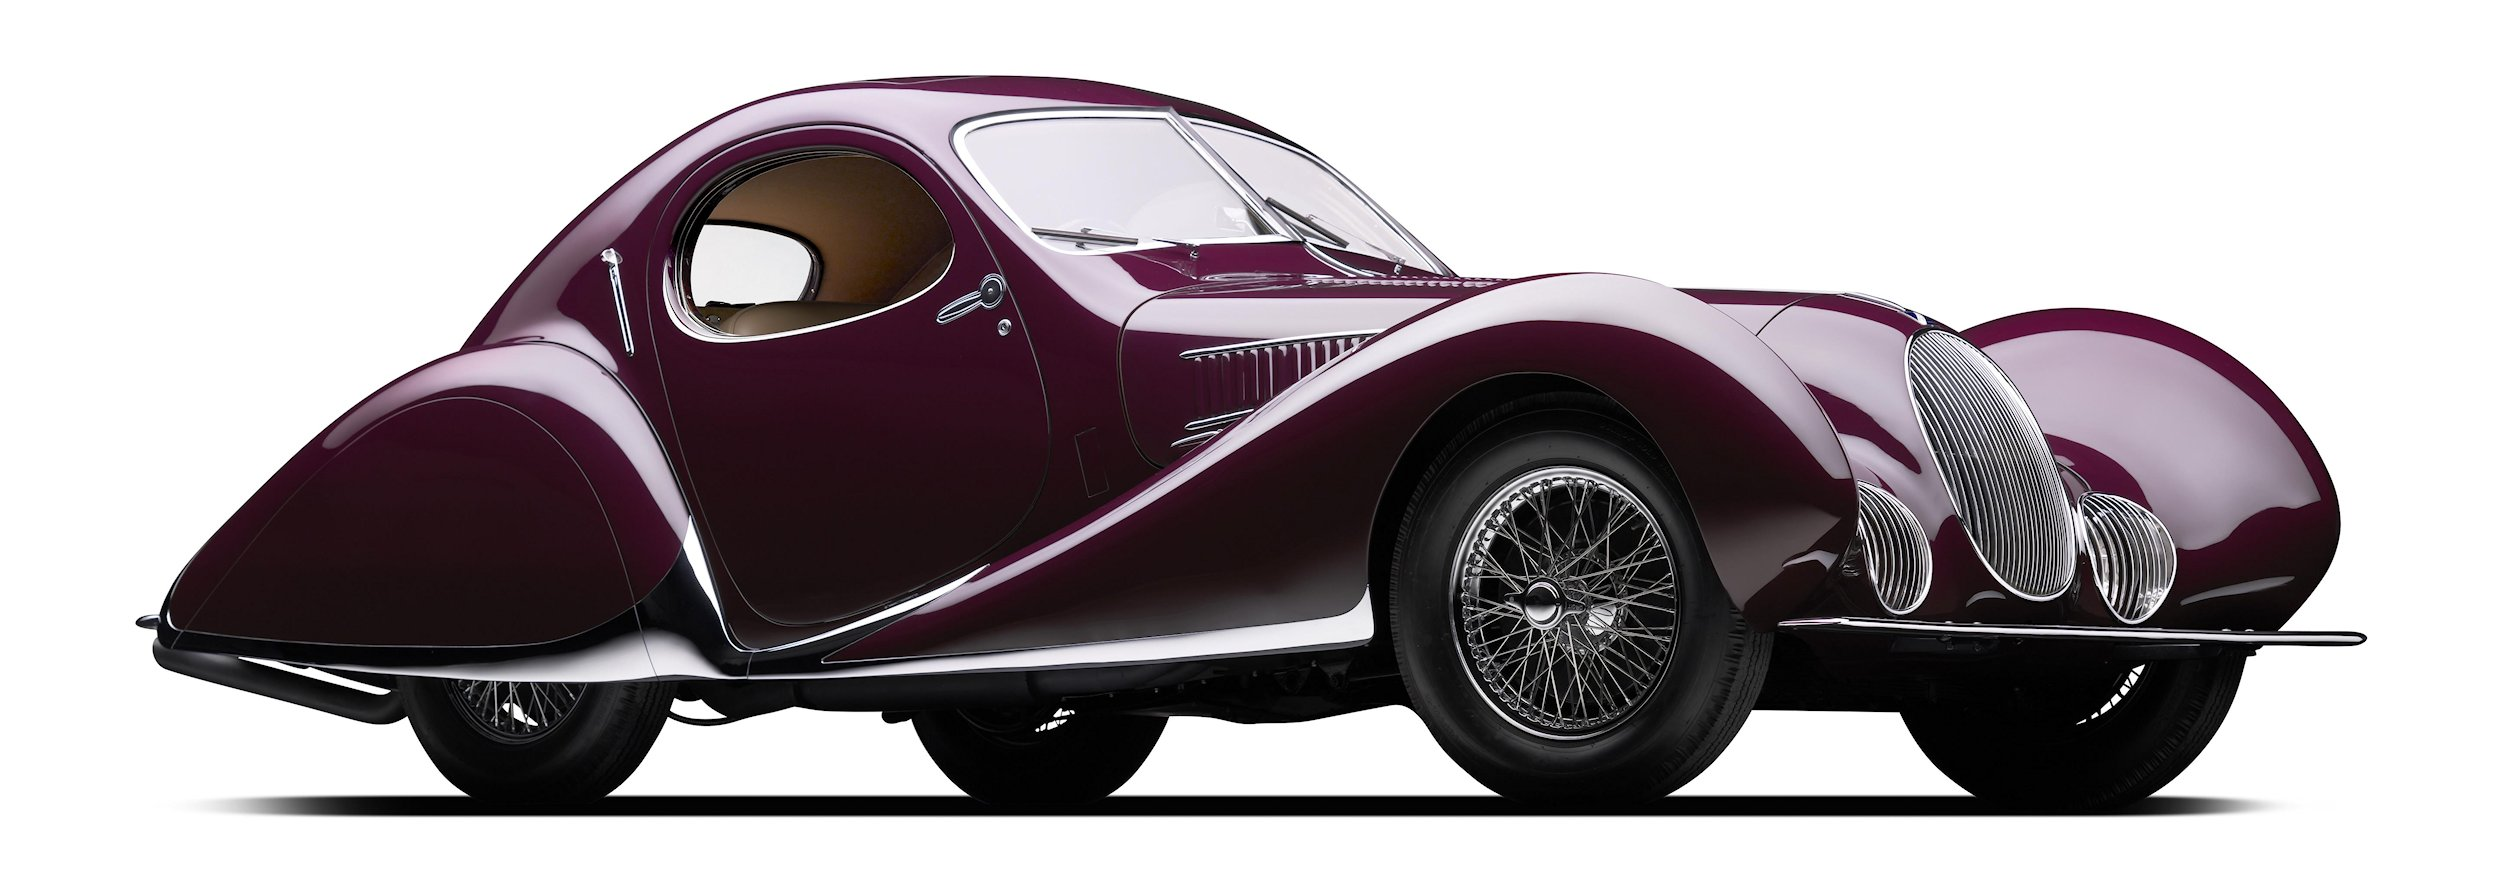 The Mullin Automotive Museum's 1937 Talbot-Lago T150-C SS 'Goutte d'Eau, which was just honored as the very first recipient of the Peninsula Classics Best of the Best Award at The Quail, will be on public display in the Mullin Grand Salon at the Petersen Automotive Museum for the next 10 weeks.